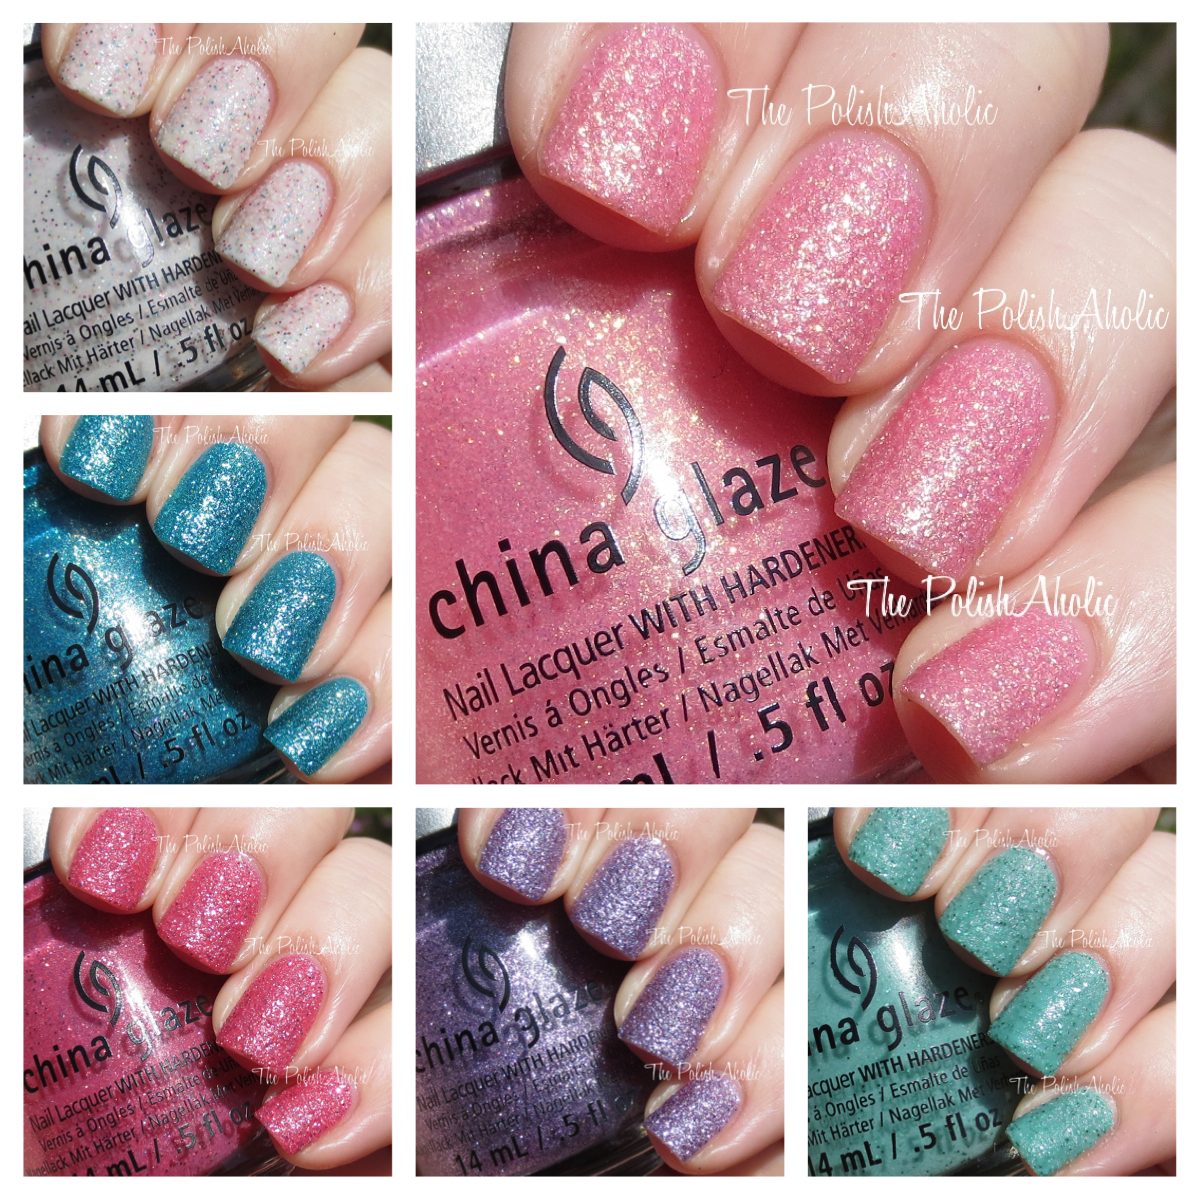 The polishaholic china glaze sea goddess collection swatches sand dolla make you holla is multicolored glitter in an off white creamy textured base the base leans towards being a light pink the formula was ok m4hsunfo